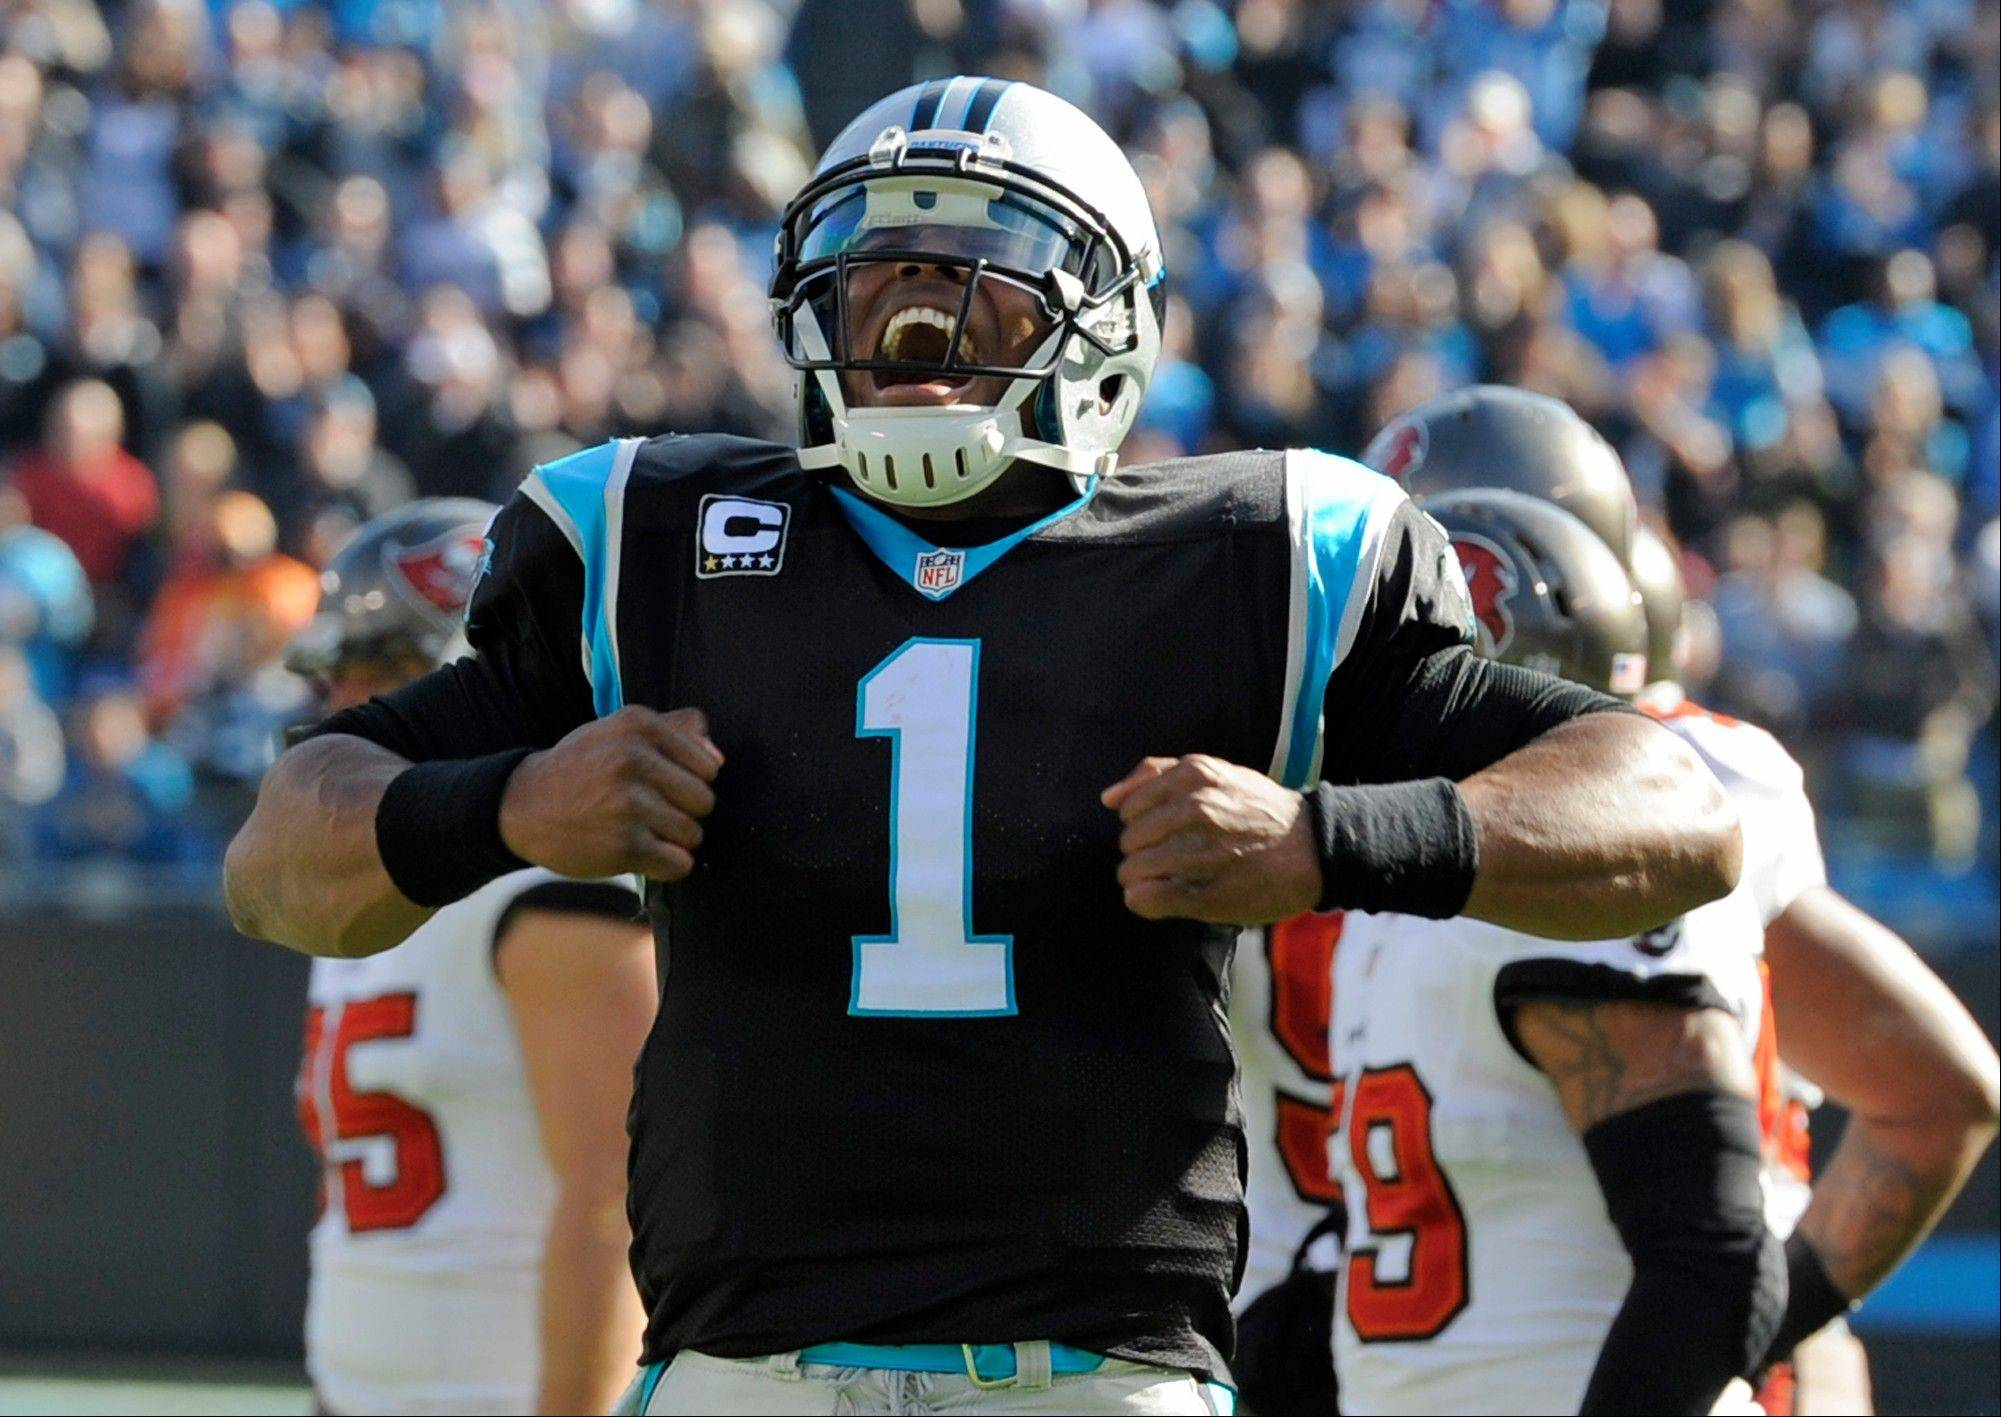 Carolina Panthers� Cam Newton (1) celebrates his touchdown pass against the Tampa Bay Buccaneers in the first half in Charlotte, N.C., Sunday.